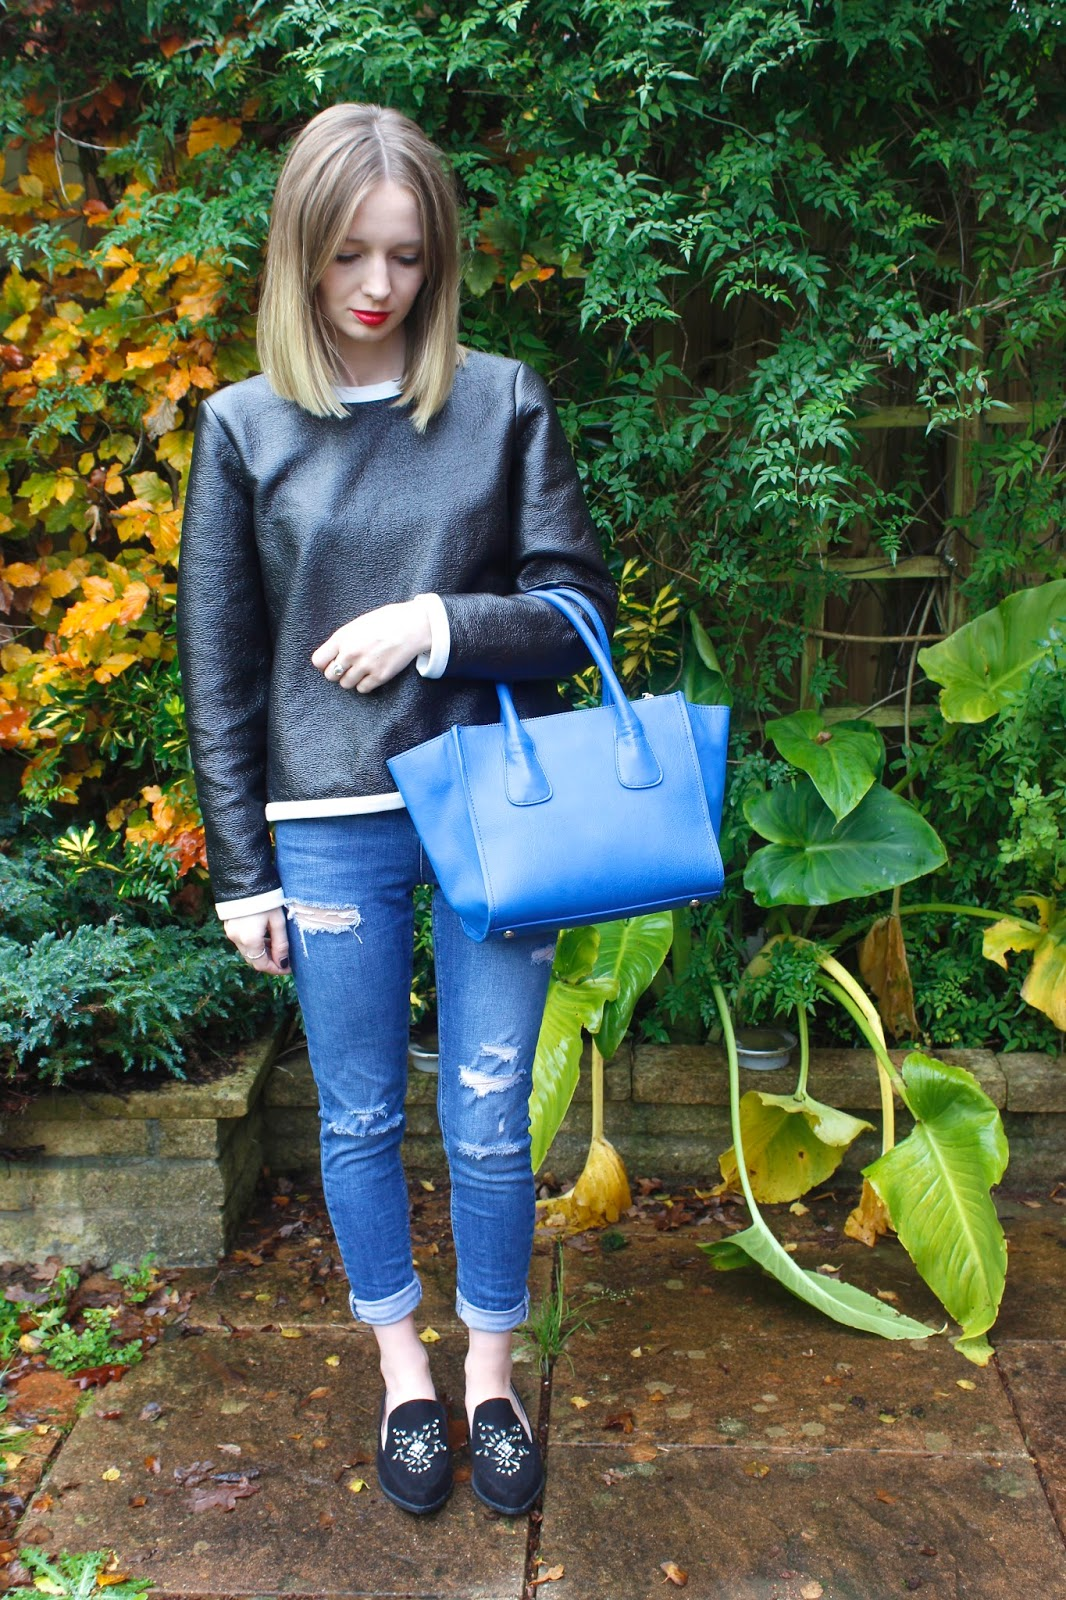 M&S Leather Jumper, Topshop Ripped Jeans, Next Embellished Loafers, Next Tote Bag